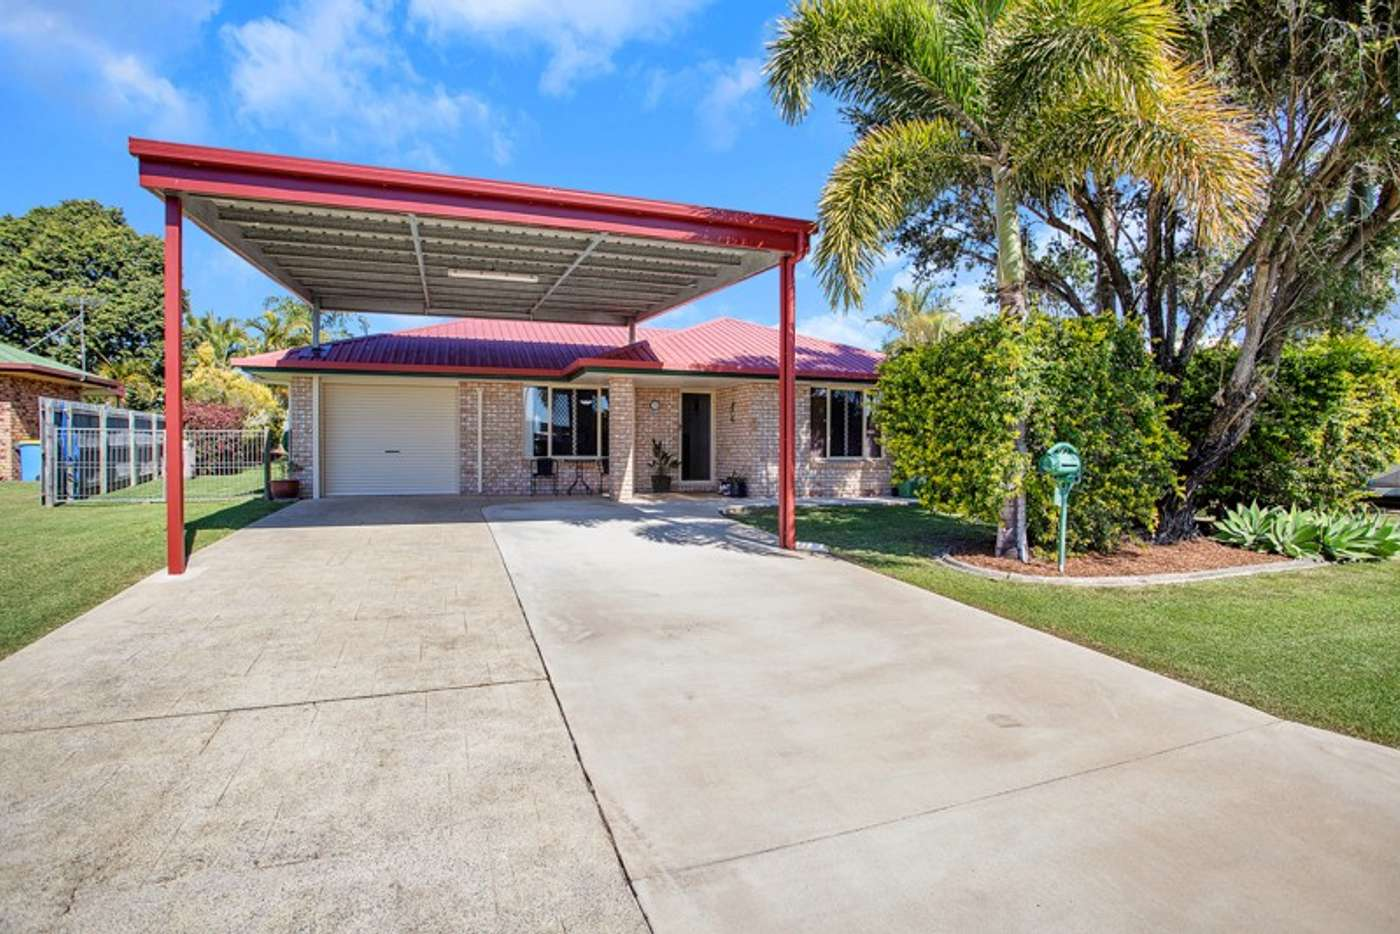 Main view of Homely house listing, 8 Galashiels Street, Beaconsfield QLD 4740